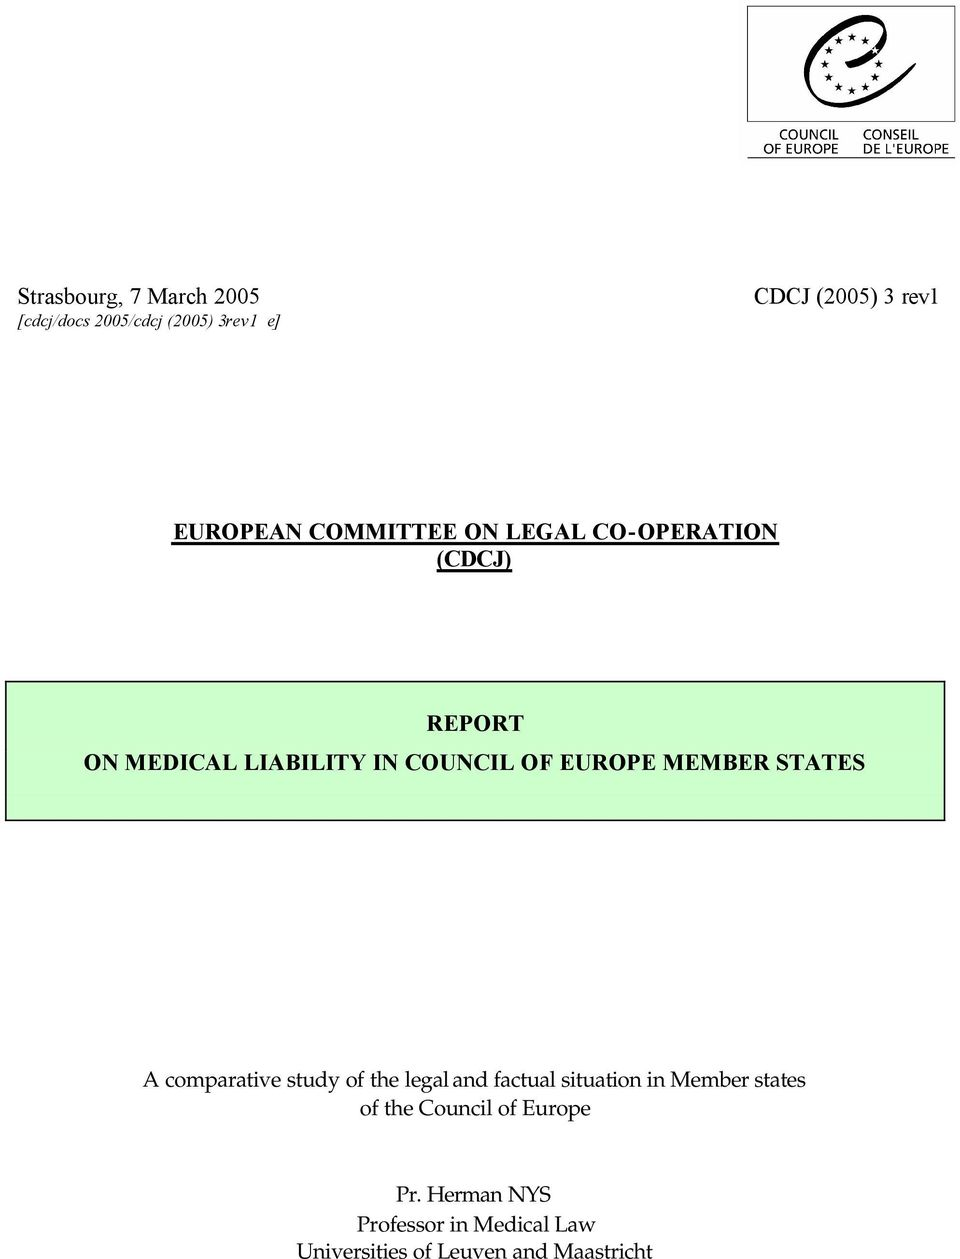 MEMBER STATES A comparative study of the legal and factual situation in Member states of